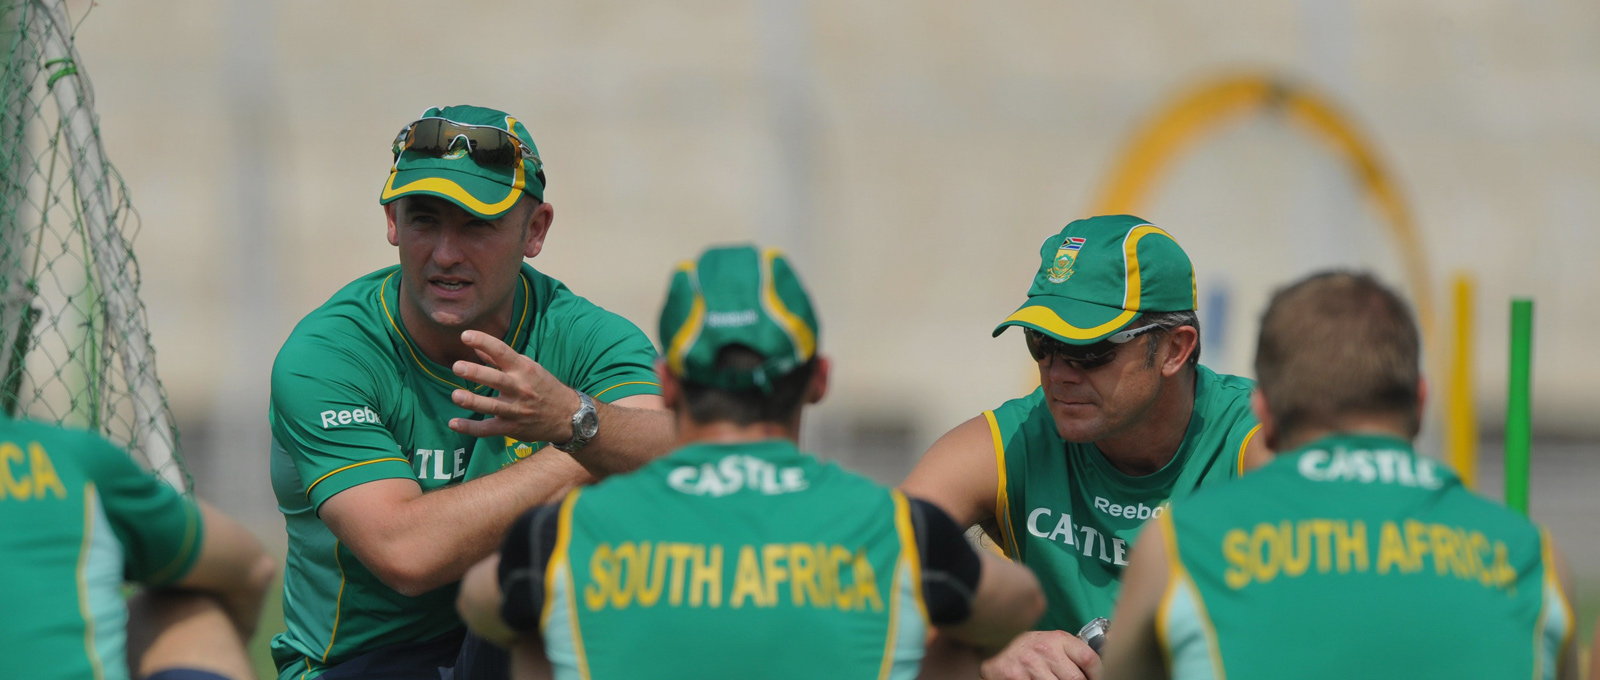 Cricket South Africa - Coaching Support Programme | Case Studies